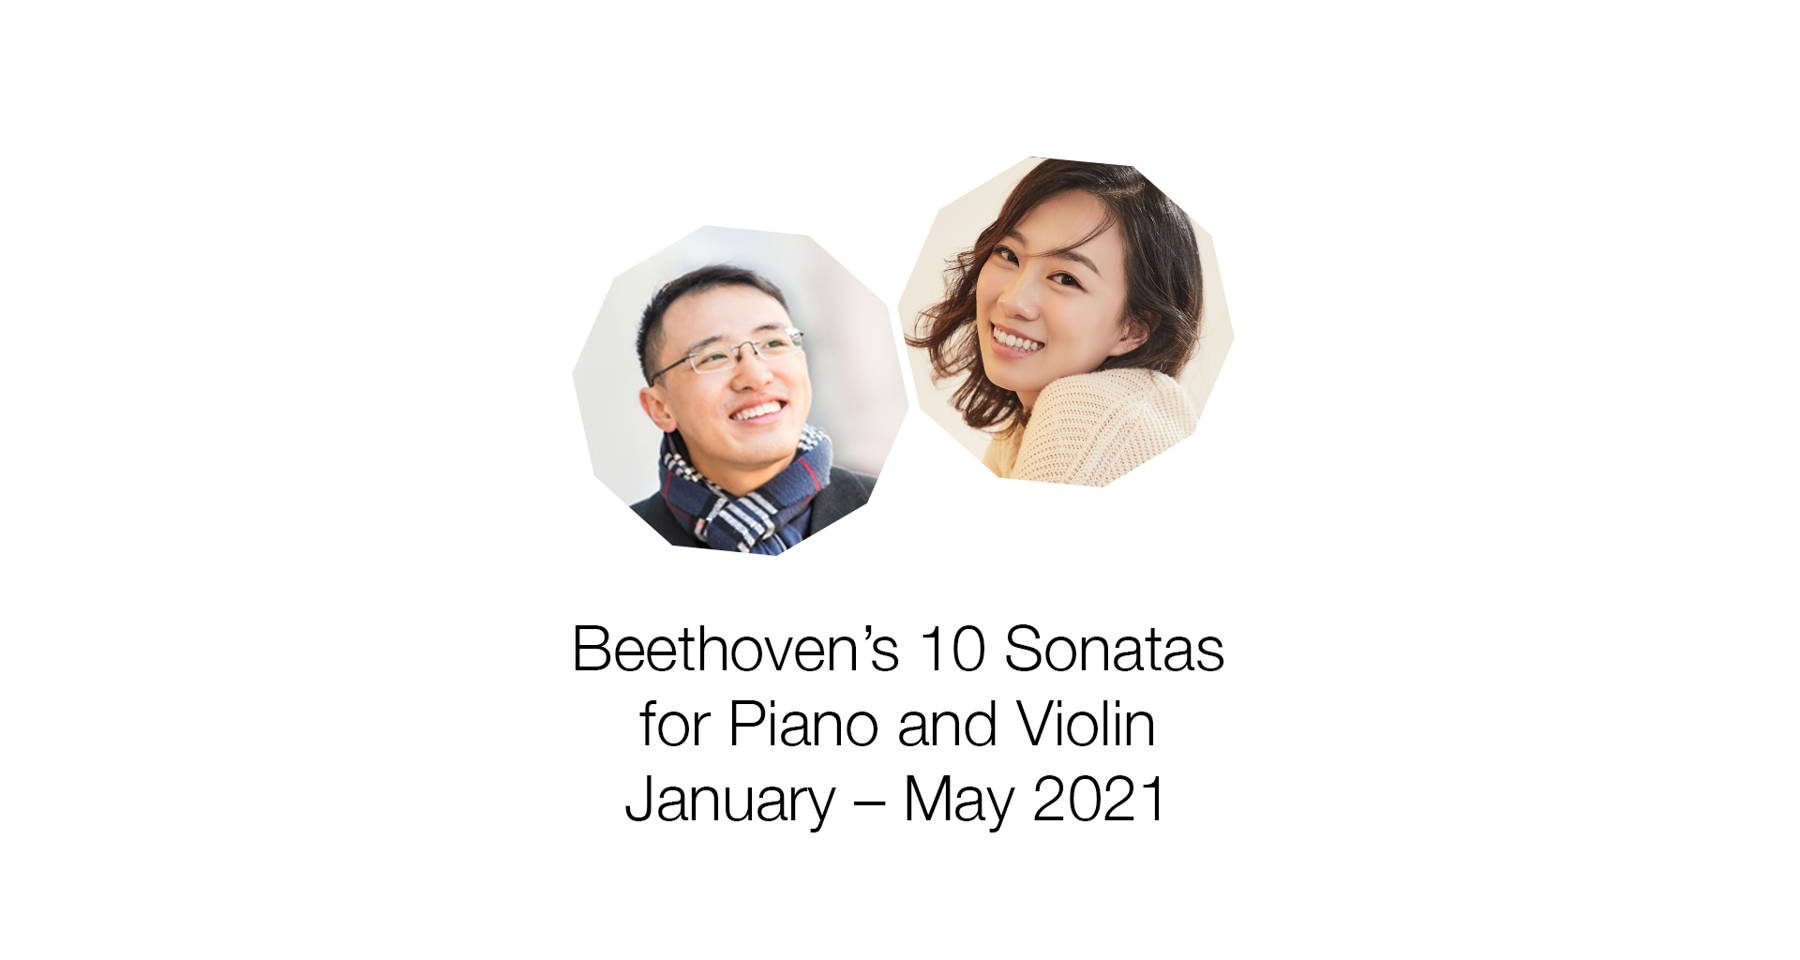 Max Tan and Friends: The Beethoven Sonata Cycle - Op. 30 Nos. 2, 3